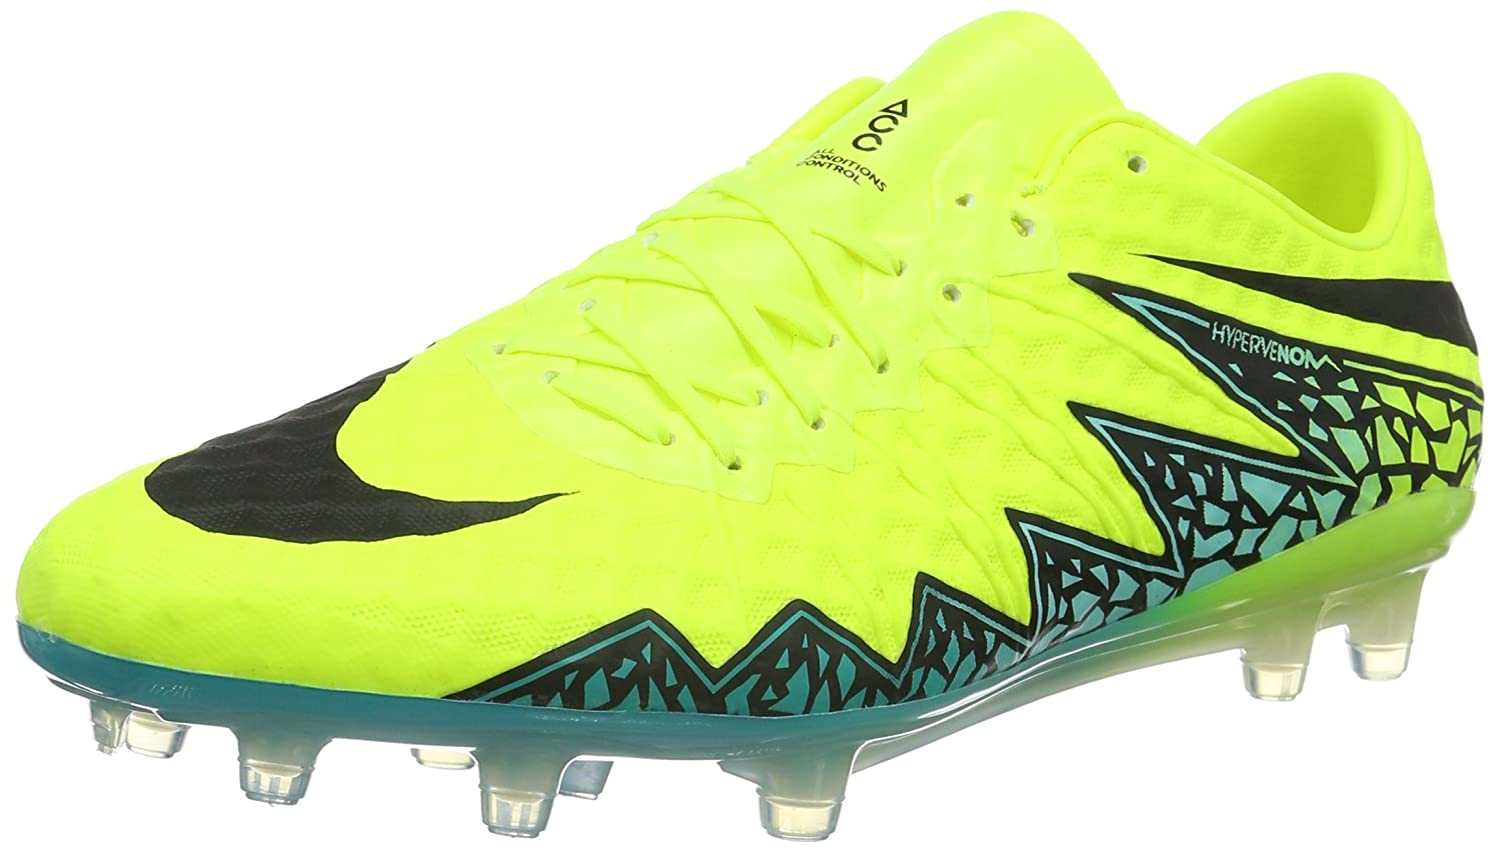 meilleure sélection 256fc 12689 Nike Hypervenom Phinish II FG Men's Firm-Ground Soccer Cleats